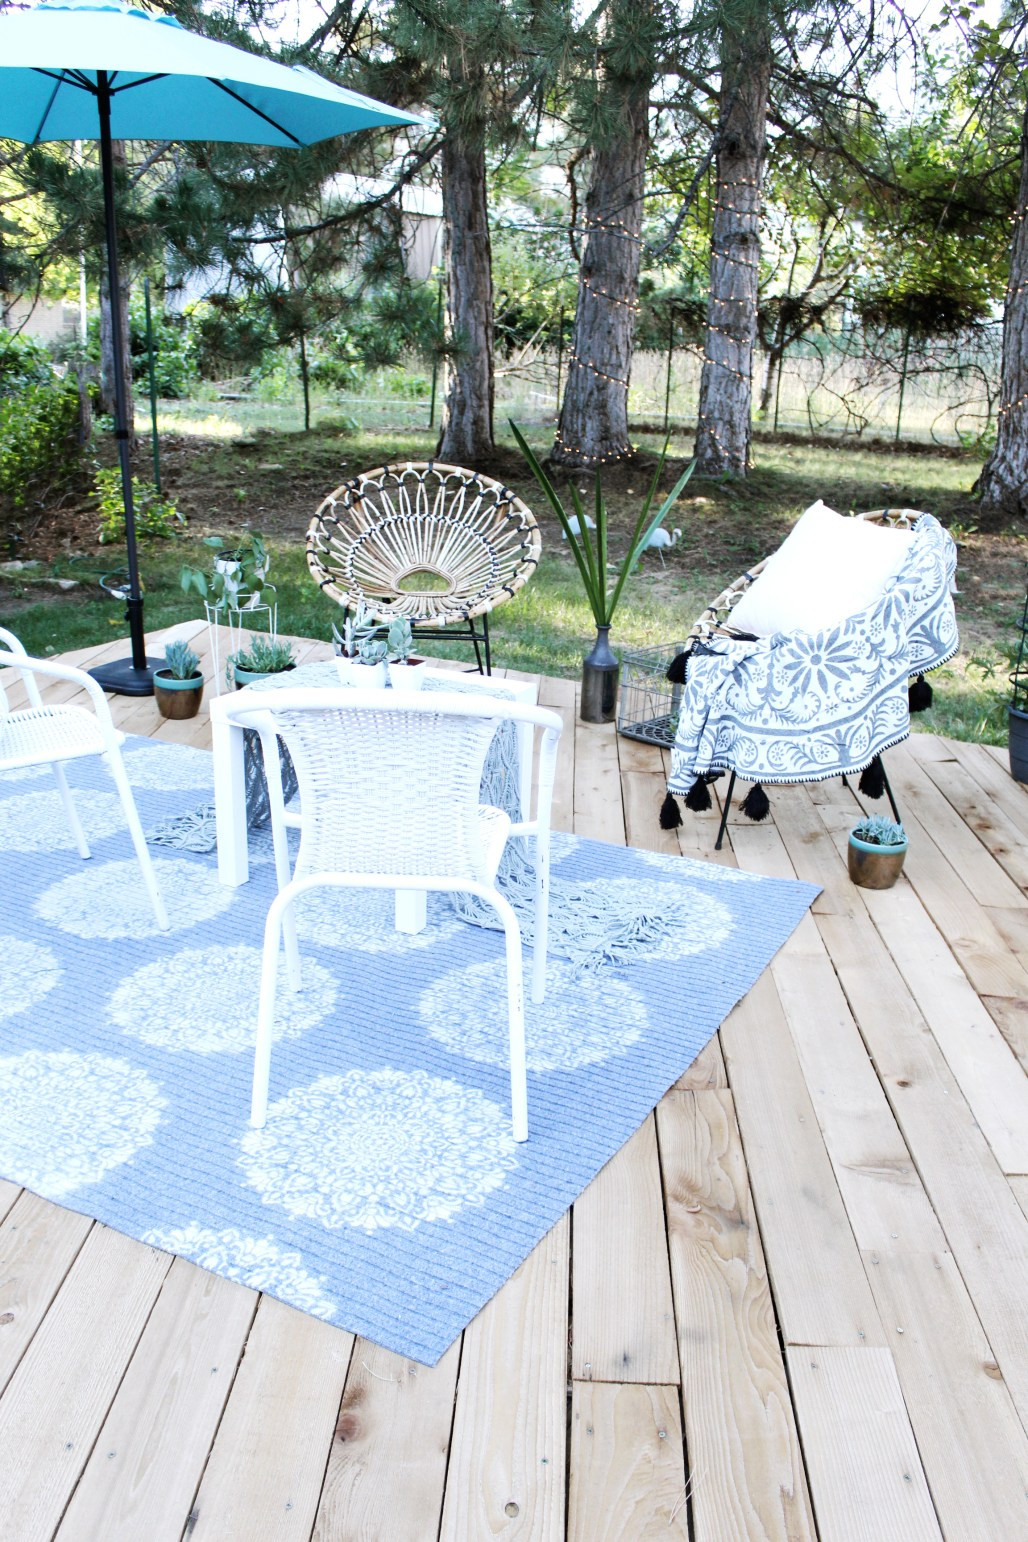 DIY Outdoor Rug with Spray Paint & Stencil